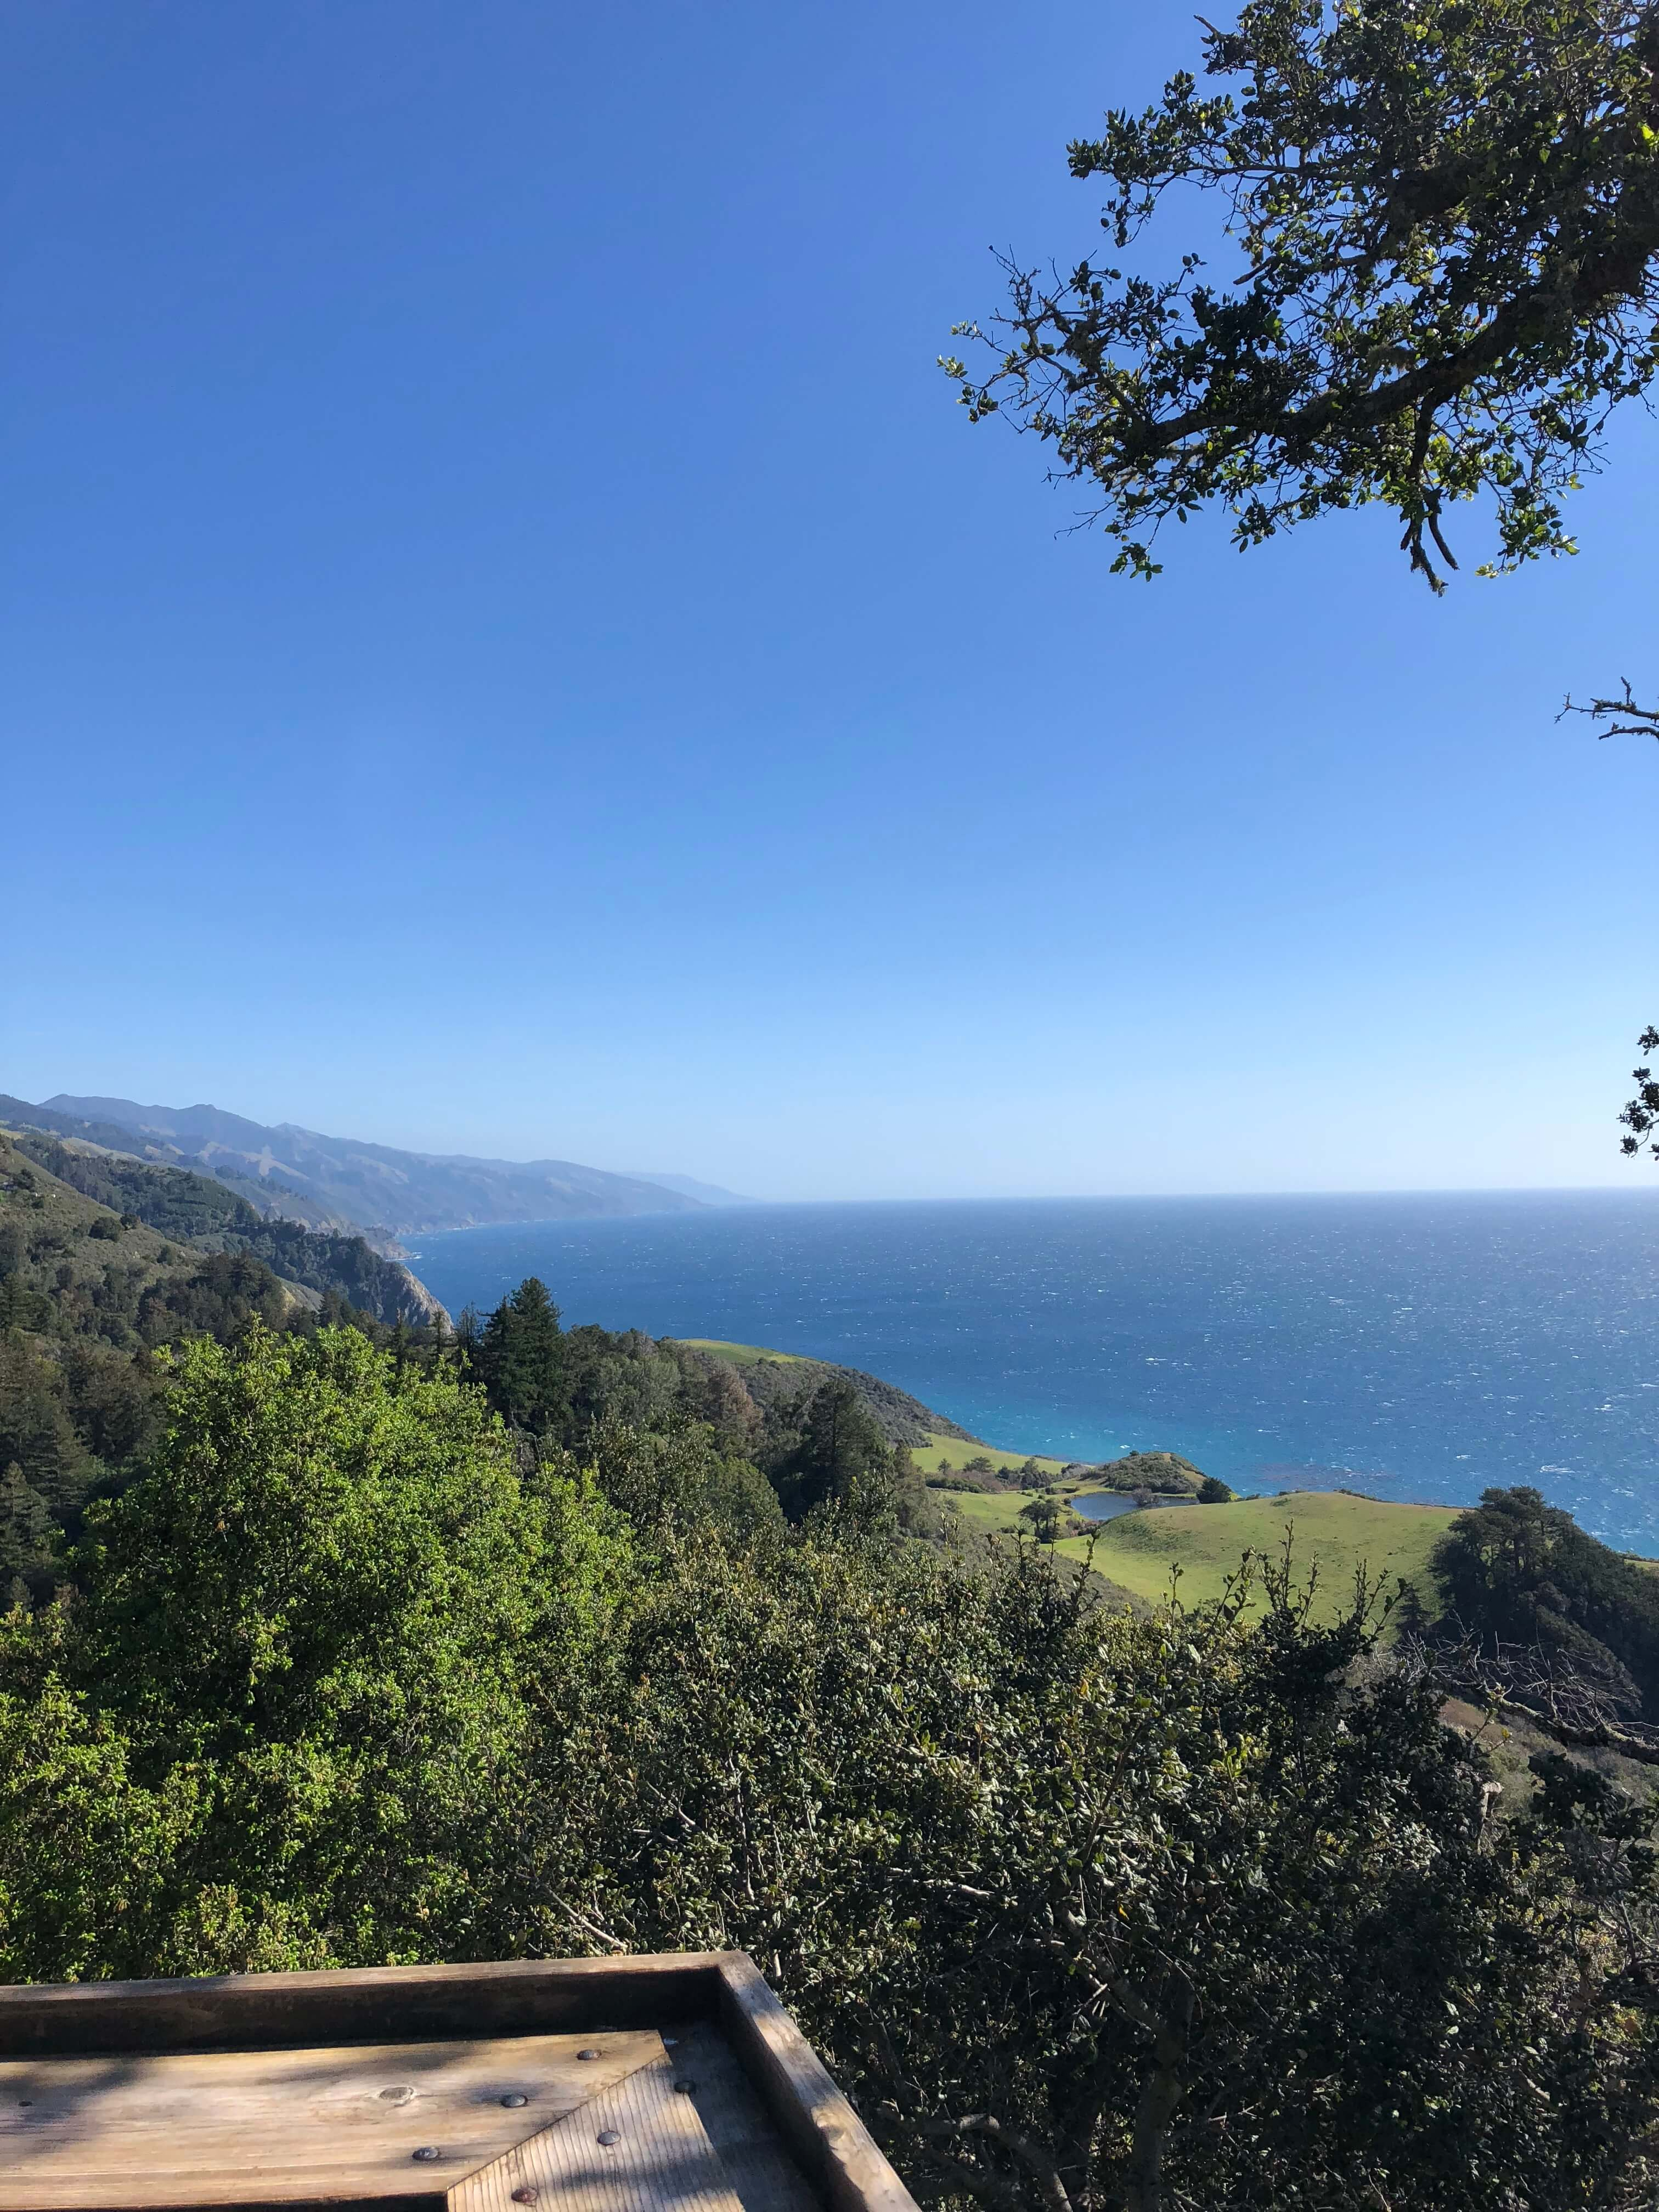 view at Highway 1 to drive to Nepenthe/Phoenix/Cafe Kevah big sur